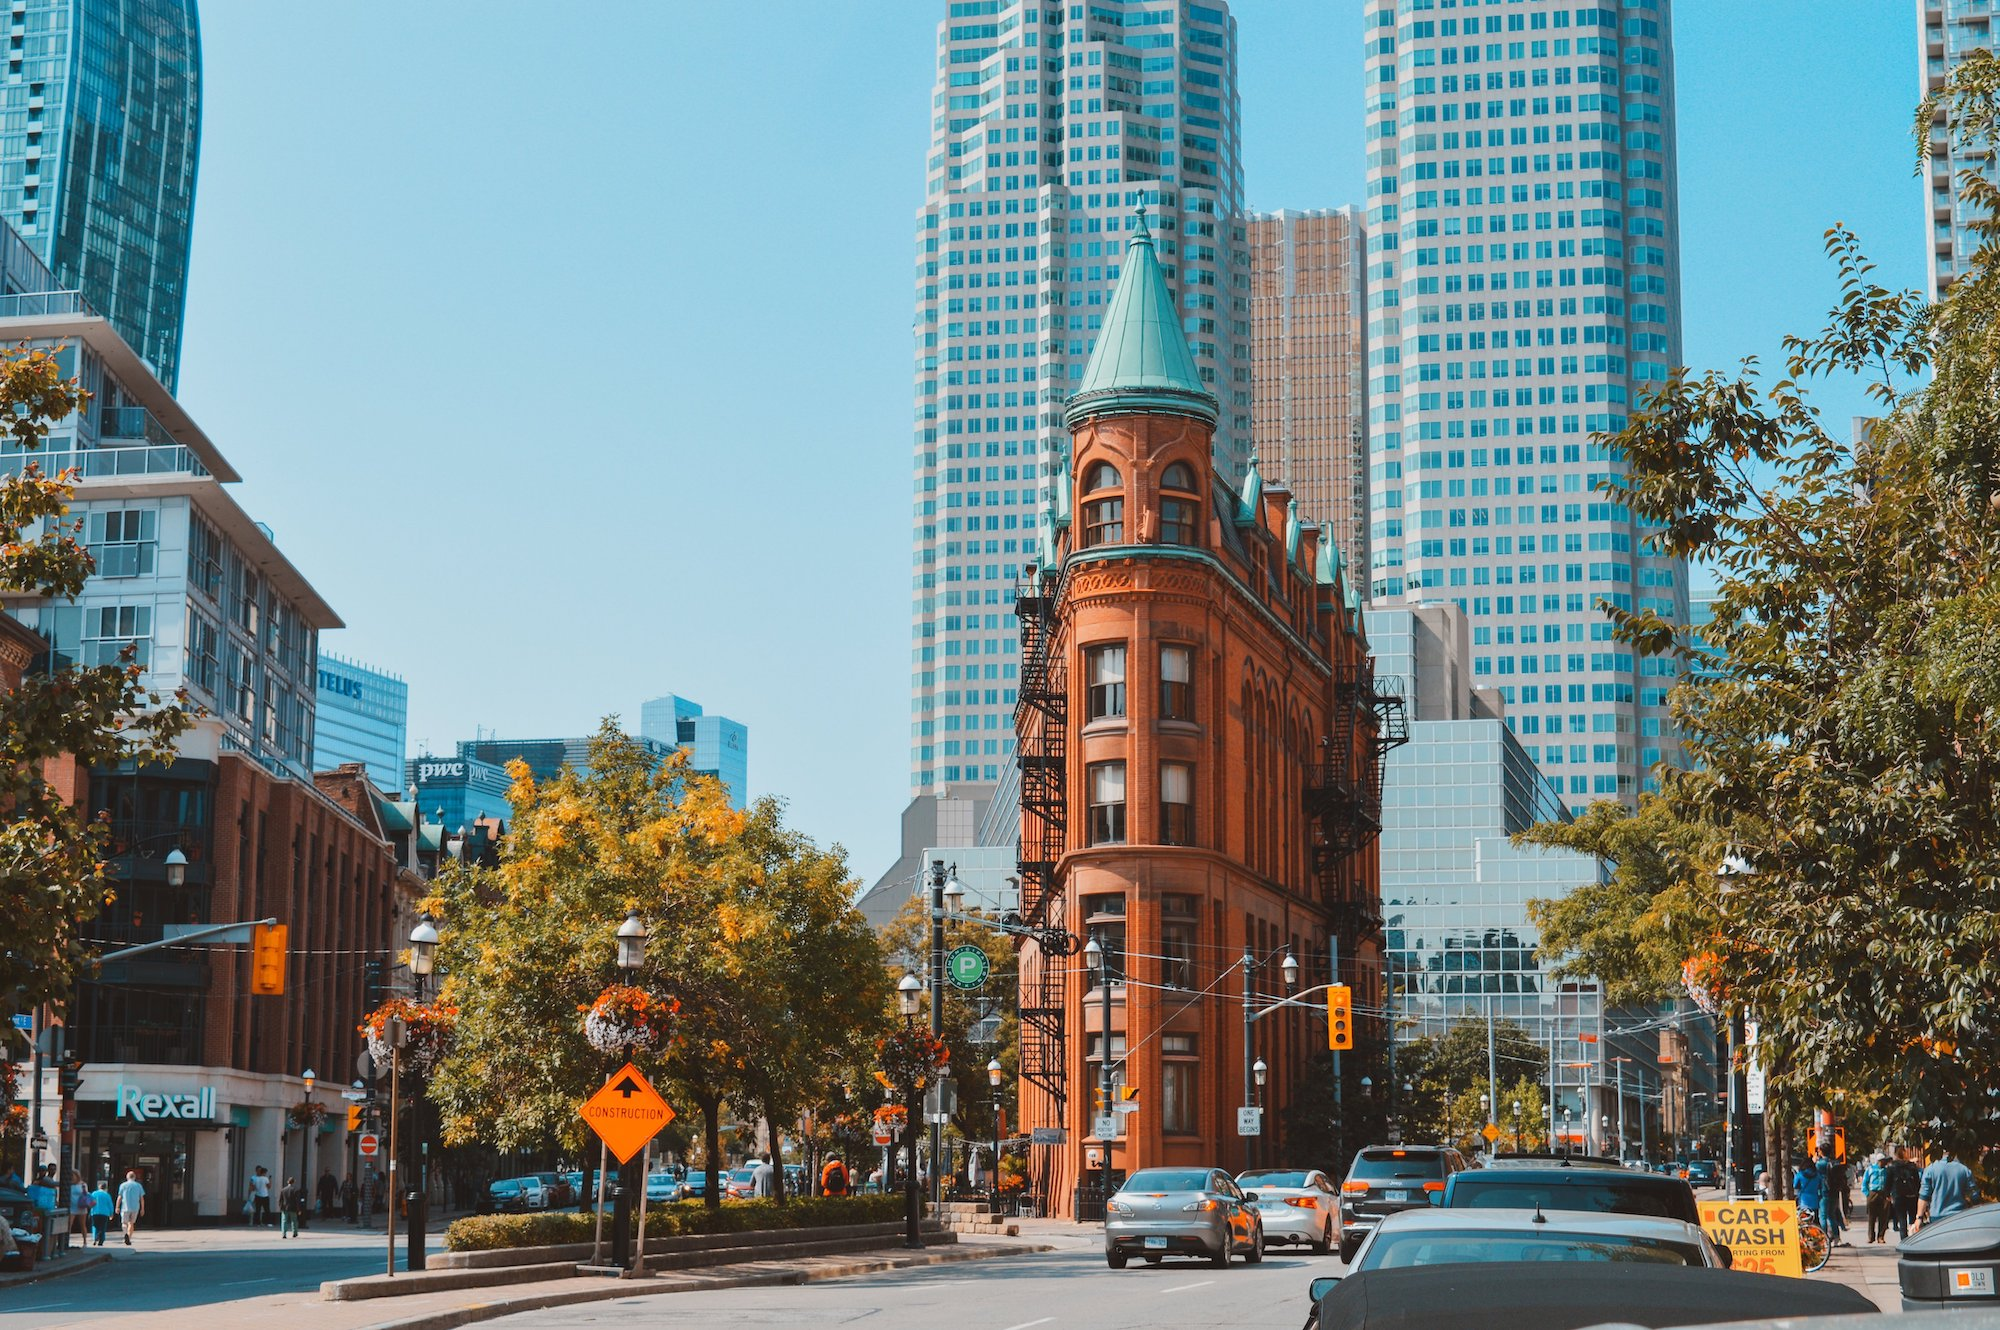 Toronto Flatiron Building In Summer